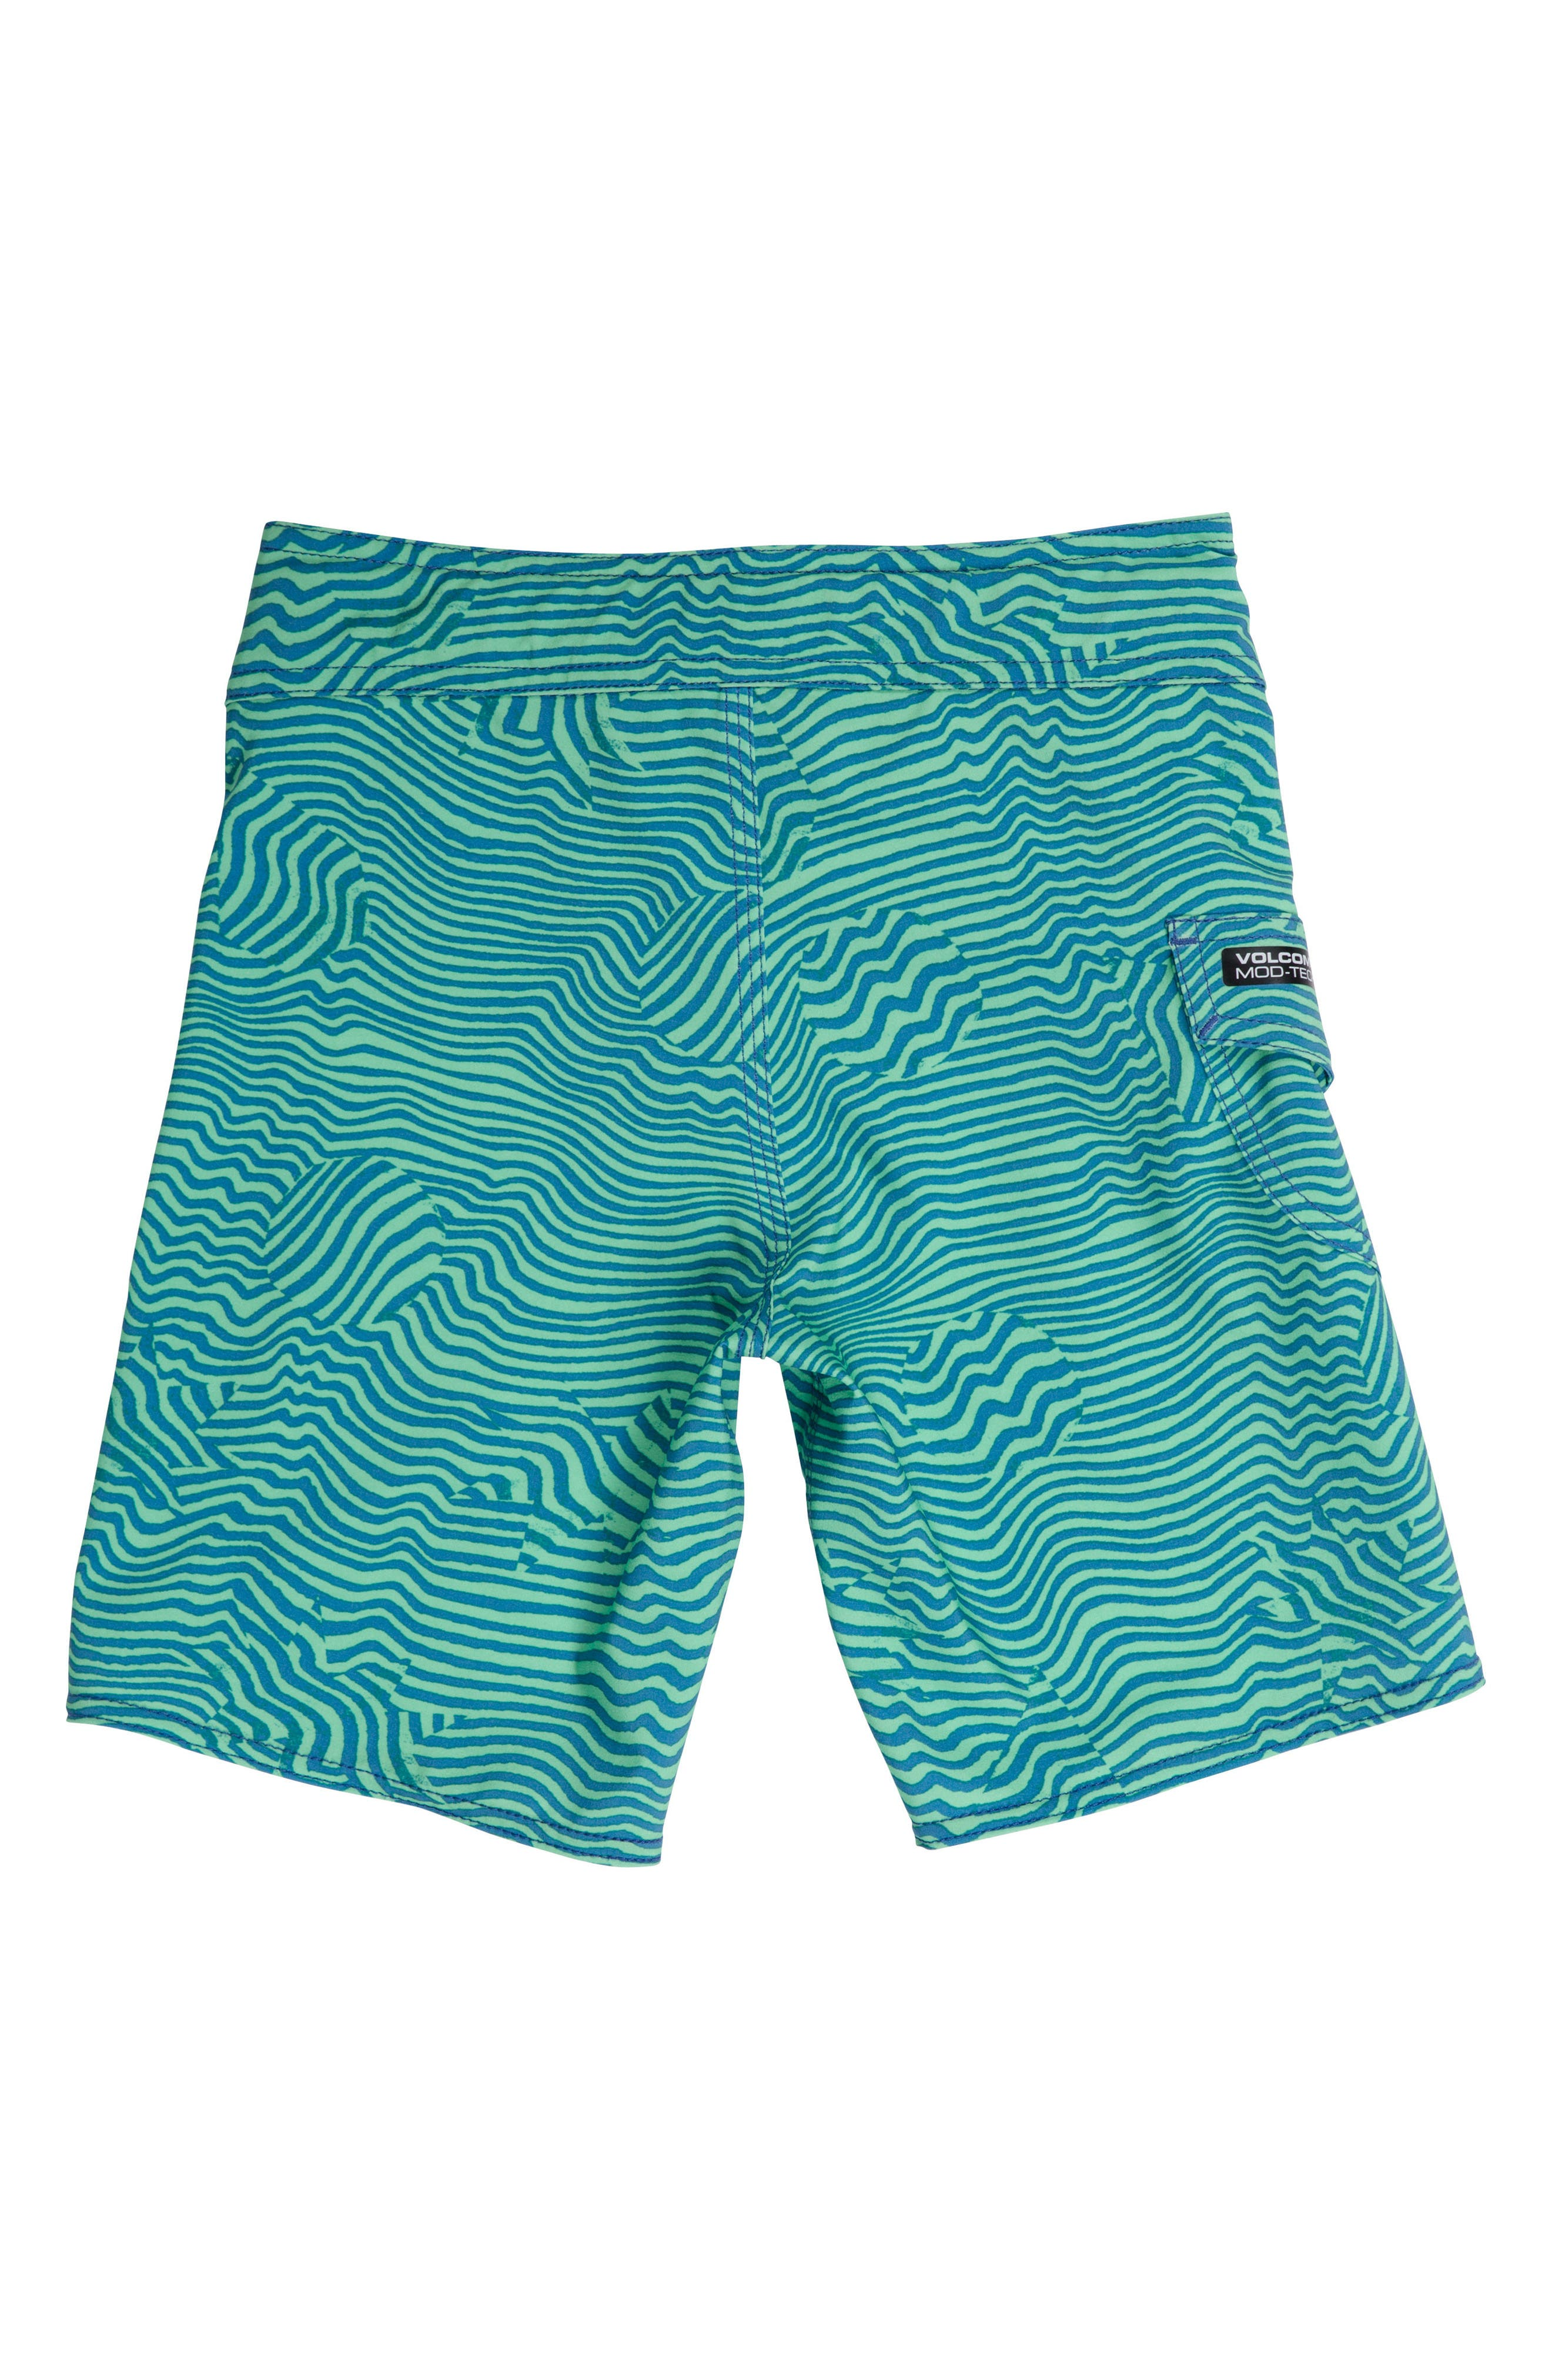 Magnetic Stone Board Shorts,                             Alternate thumbnail 2, color,                             Poison Green